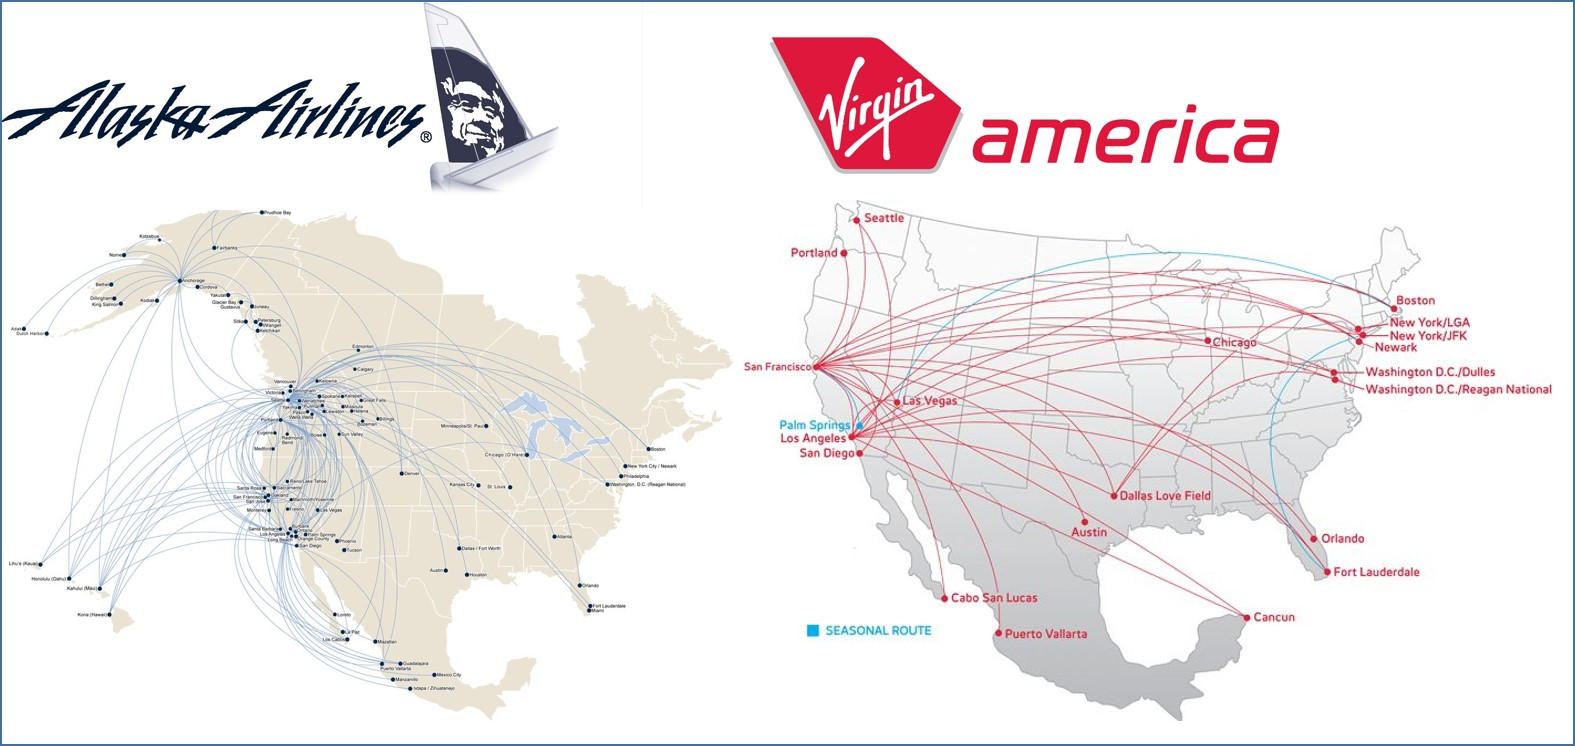 https://i1.wp.com/travellatte.net/wp-content/uploads/2016/04/Route-Maps-Alaska-Virgin.jpg